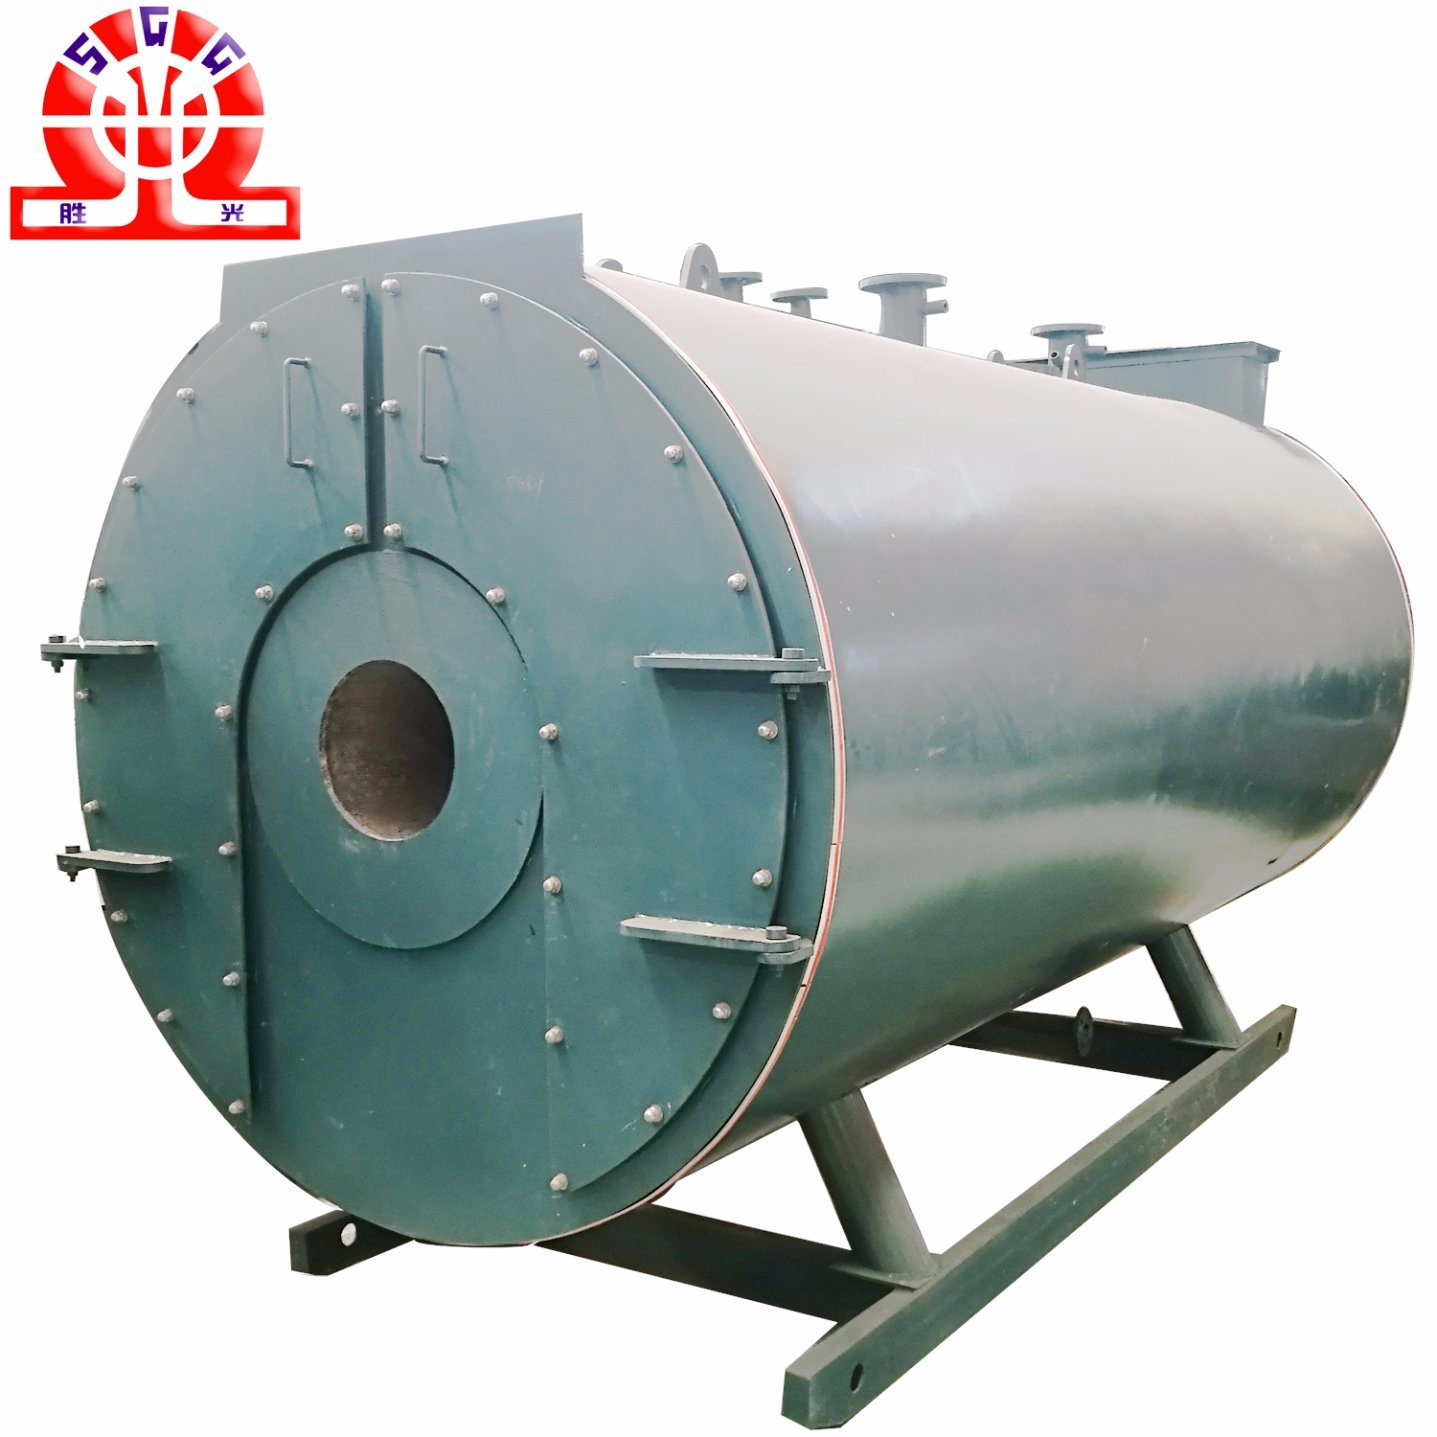 China Three Return Trip Gas Hot Water Boiler for Supply Heating ...